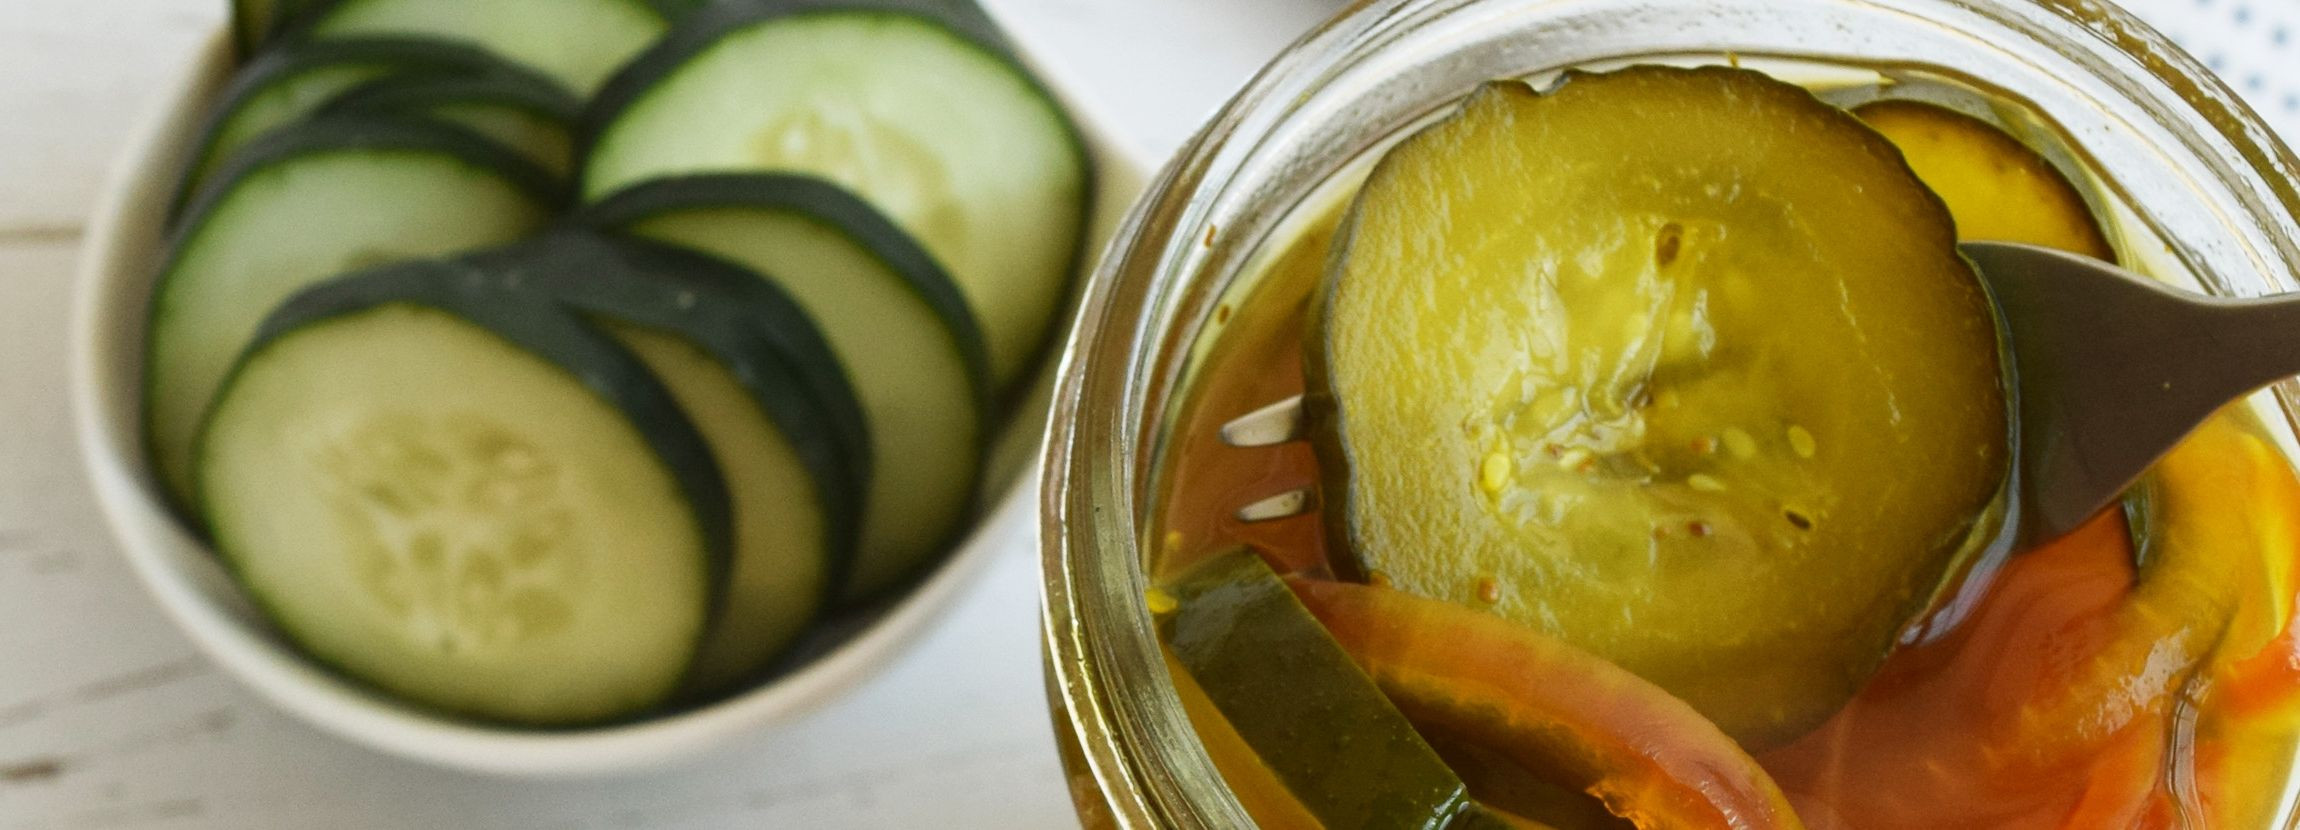 Low Carb Bread And Butter Pickles  Bread and Butter Pickles Recipe